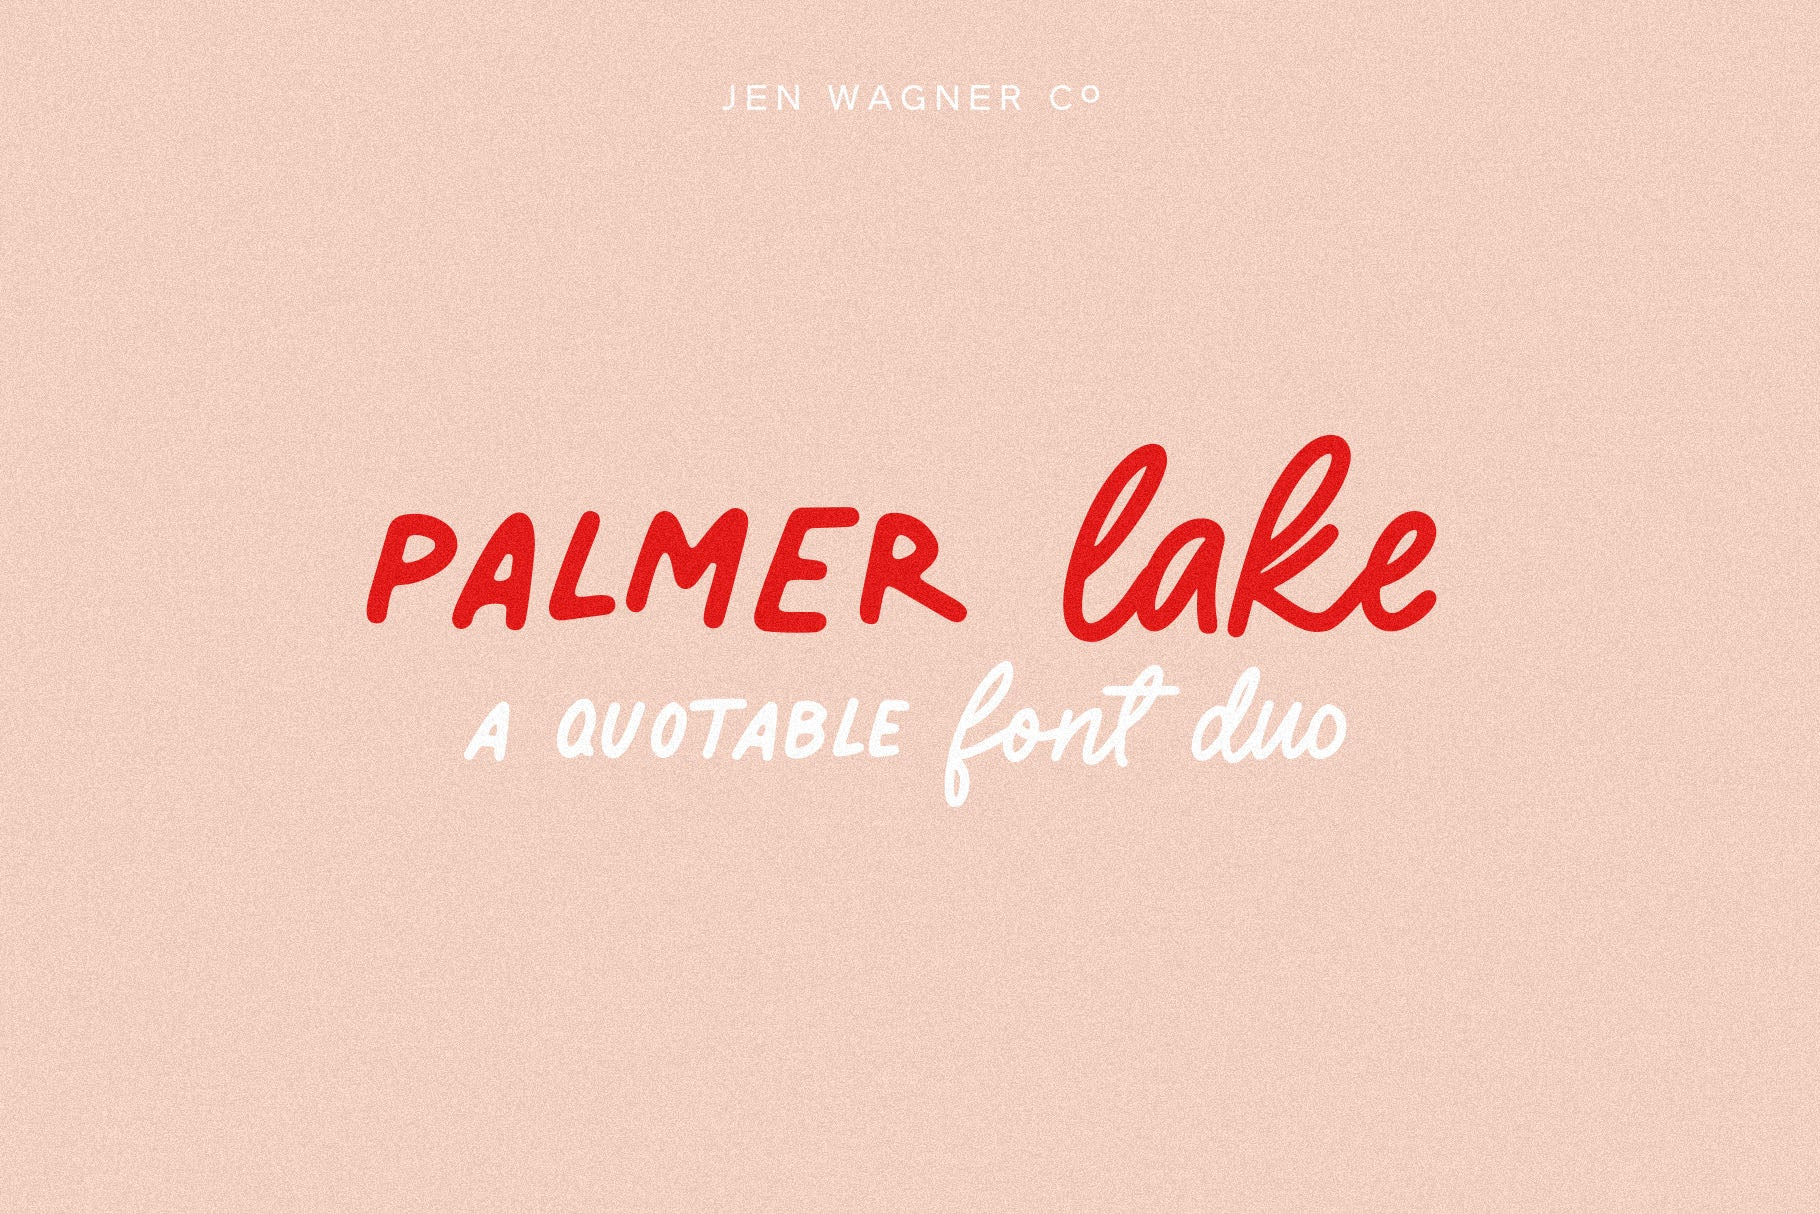 Palmer Lake | A Quotable Font Duo